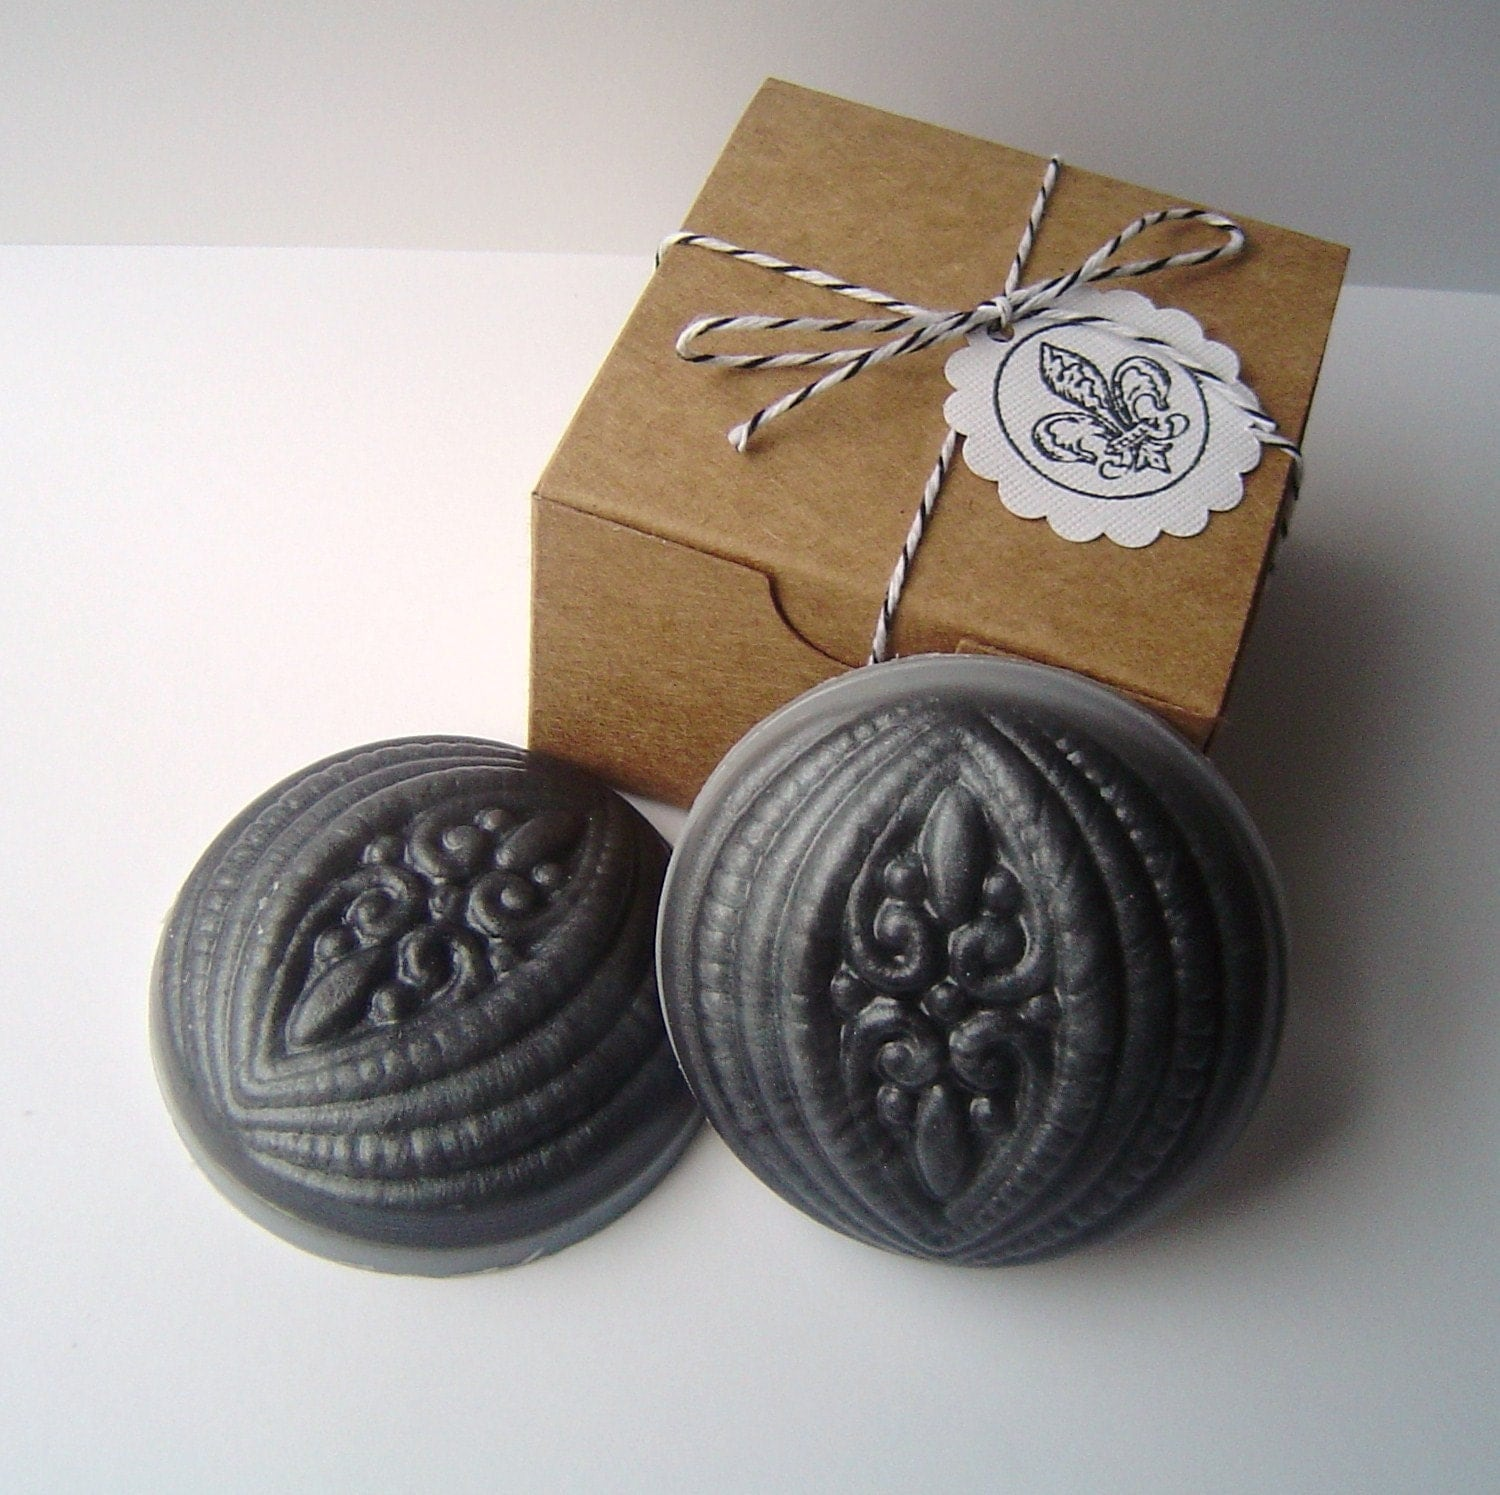 New-White Ginger and Amber Button Fleur De Lis Guest Soap Set-Glycerin and Goat's Milk Soap